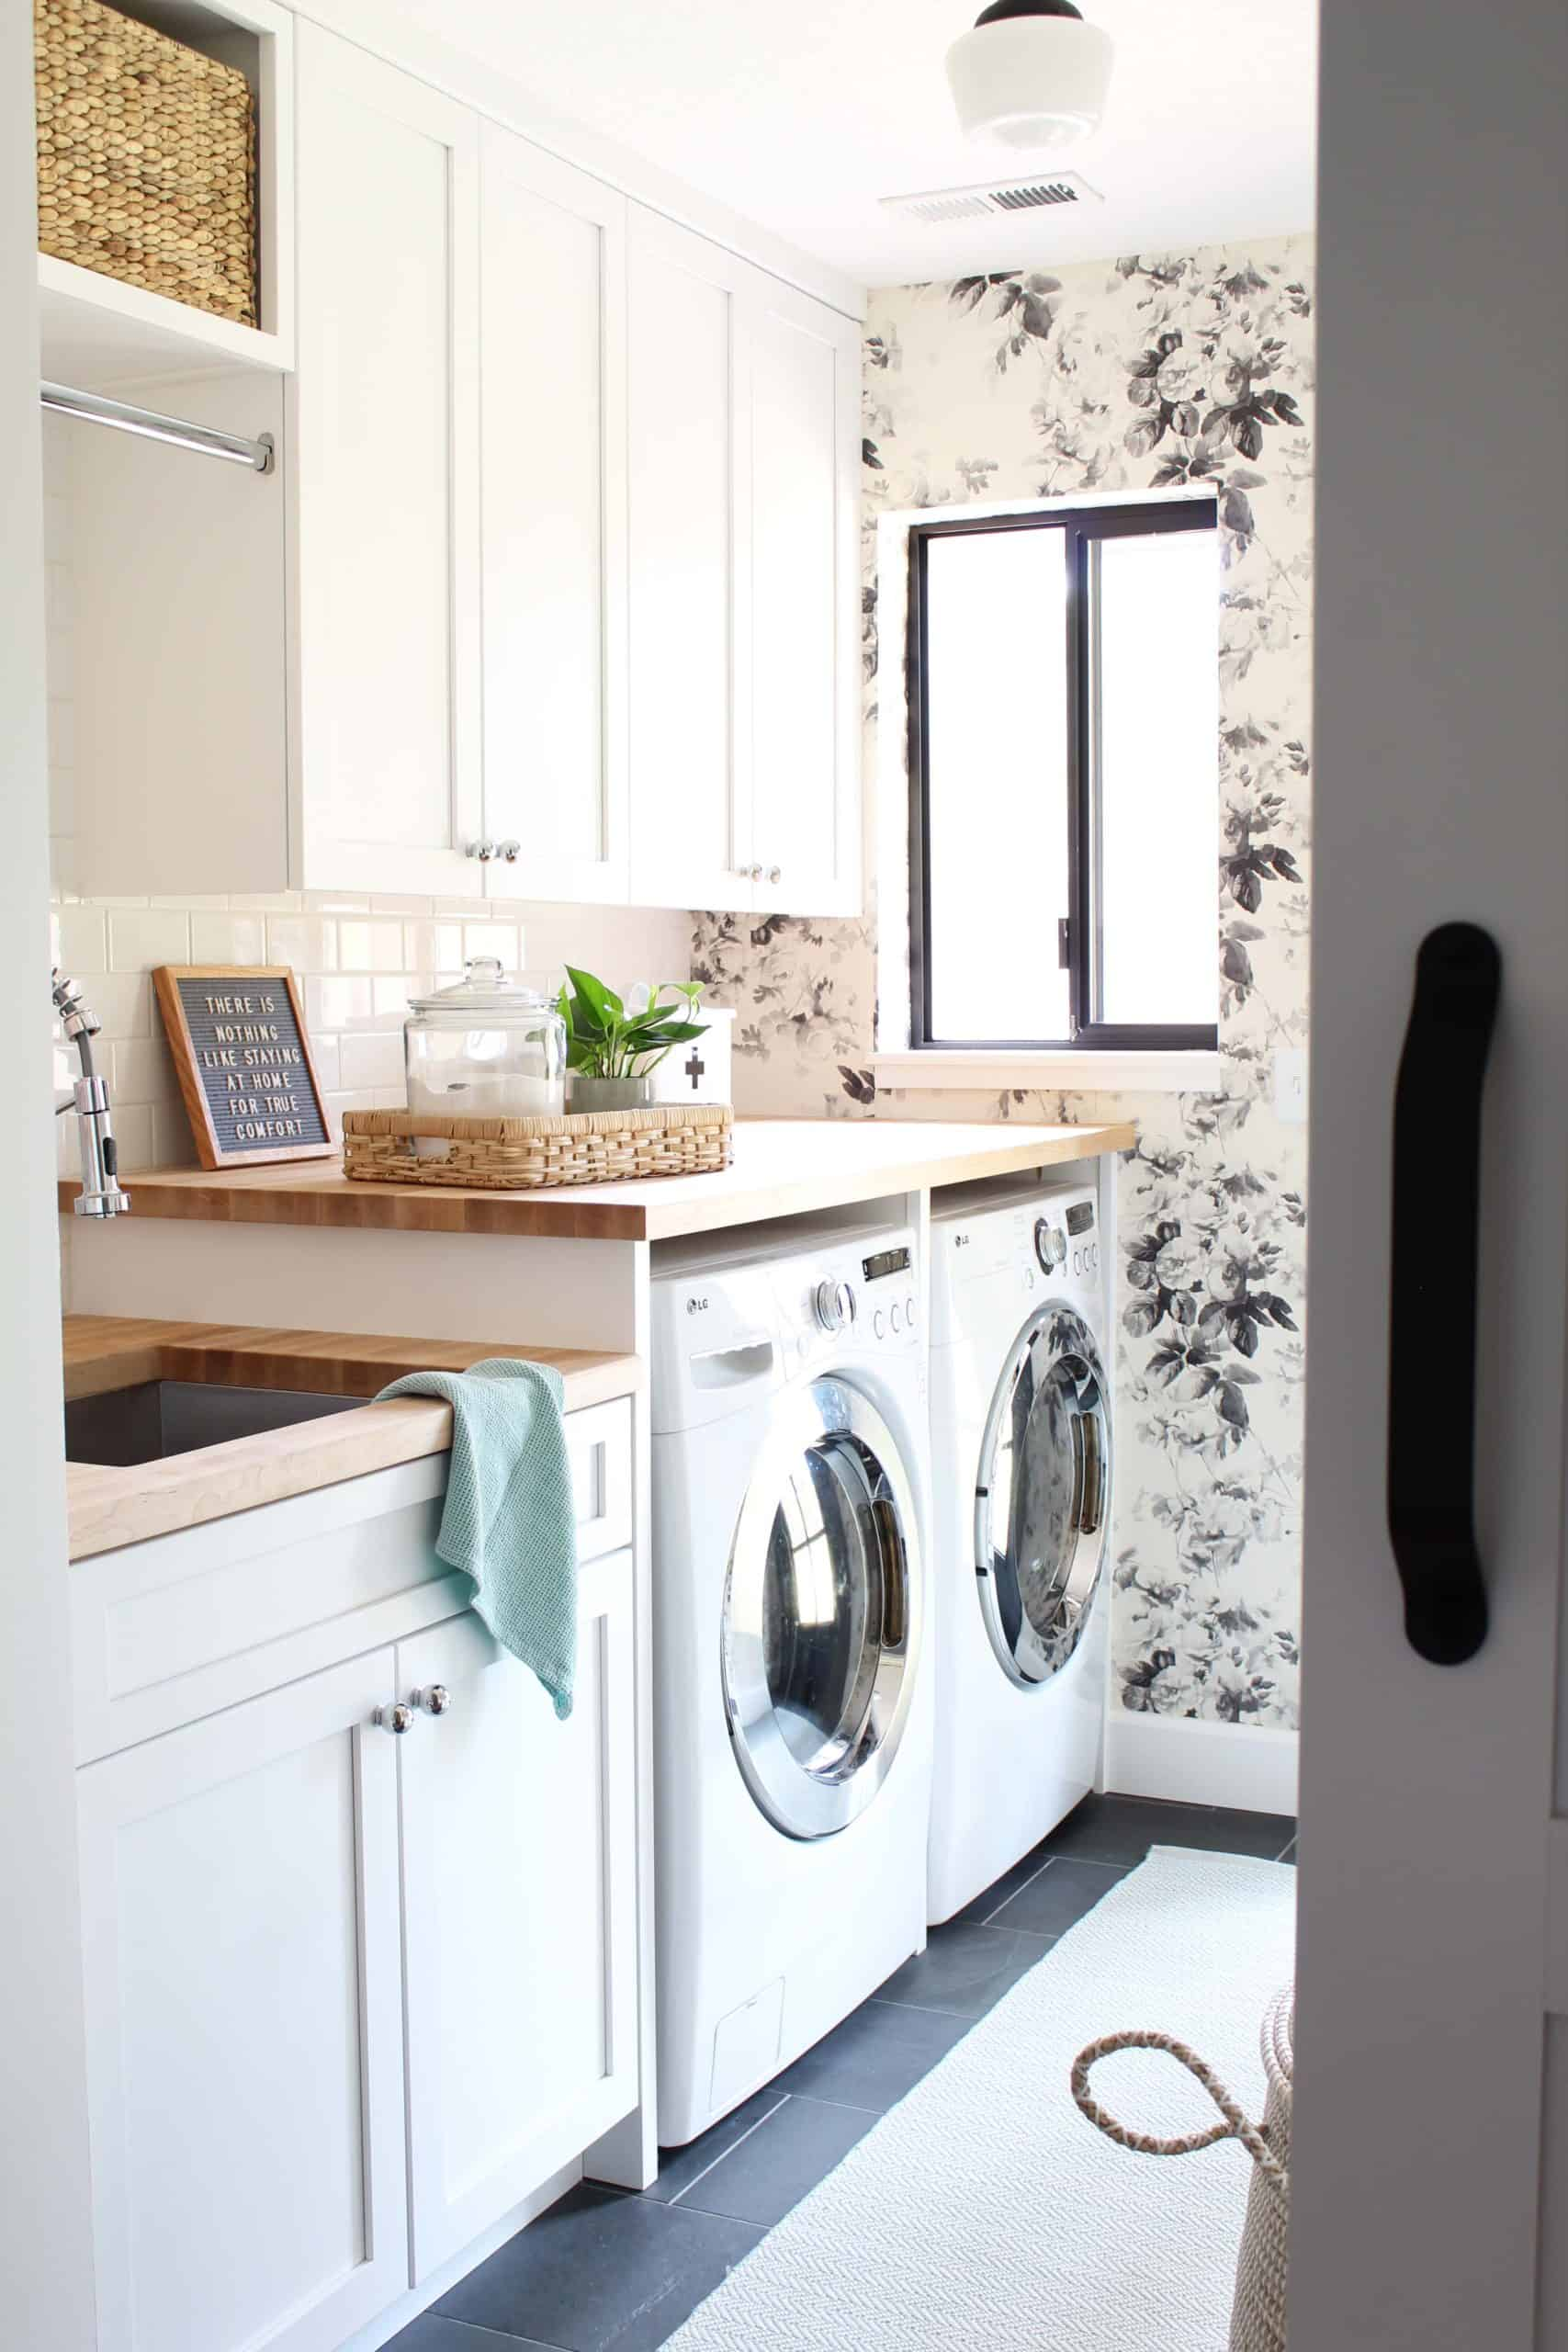 house of hackney smoky rose wall paper, laundry room wallpaper, laundry room butcher block counters, black and white floral wallpaper